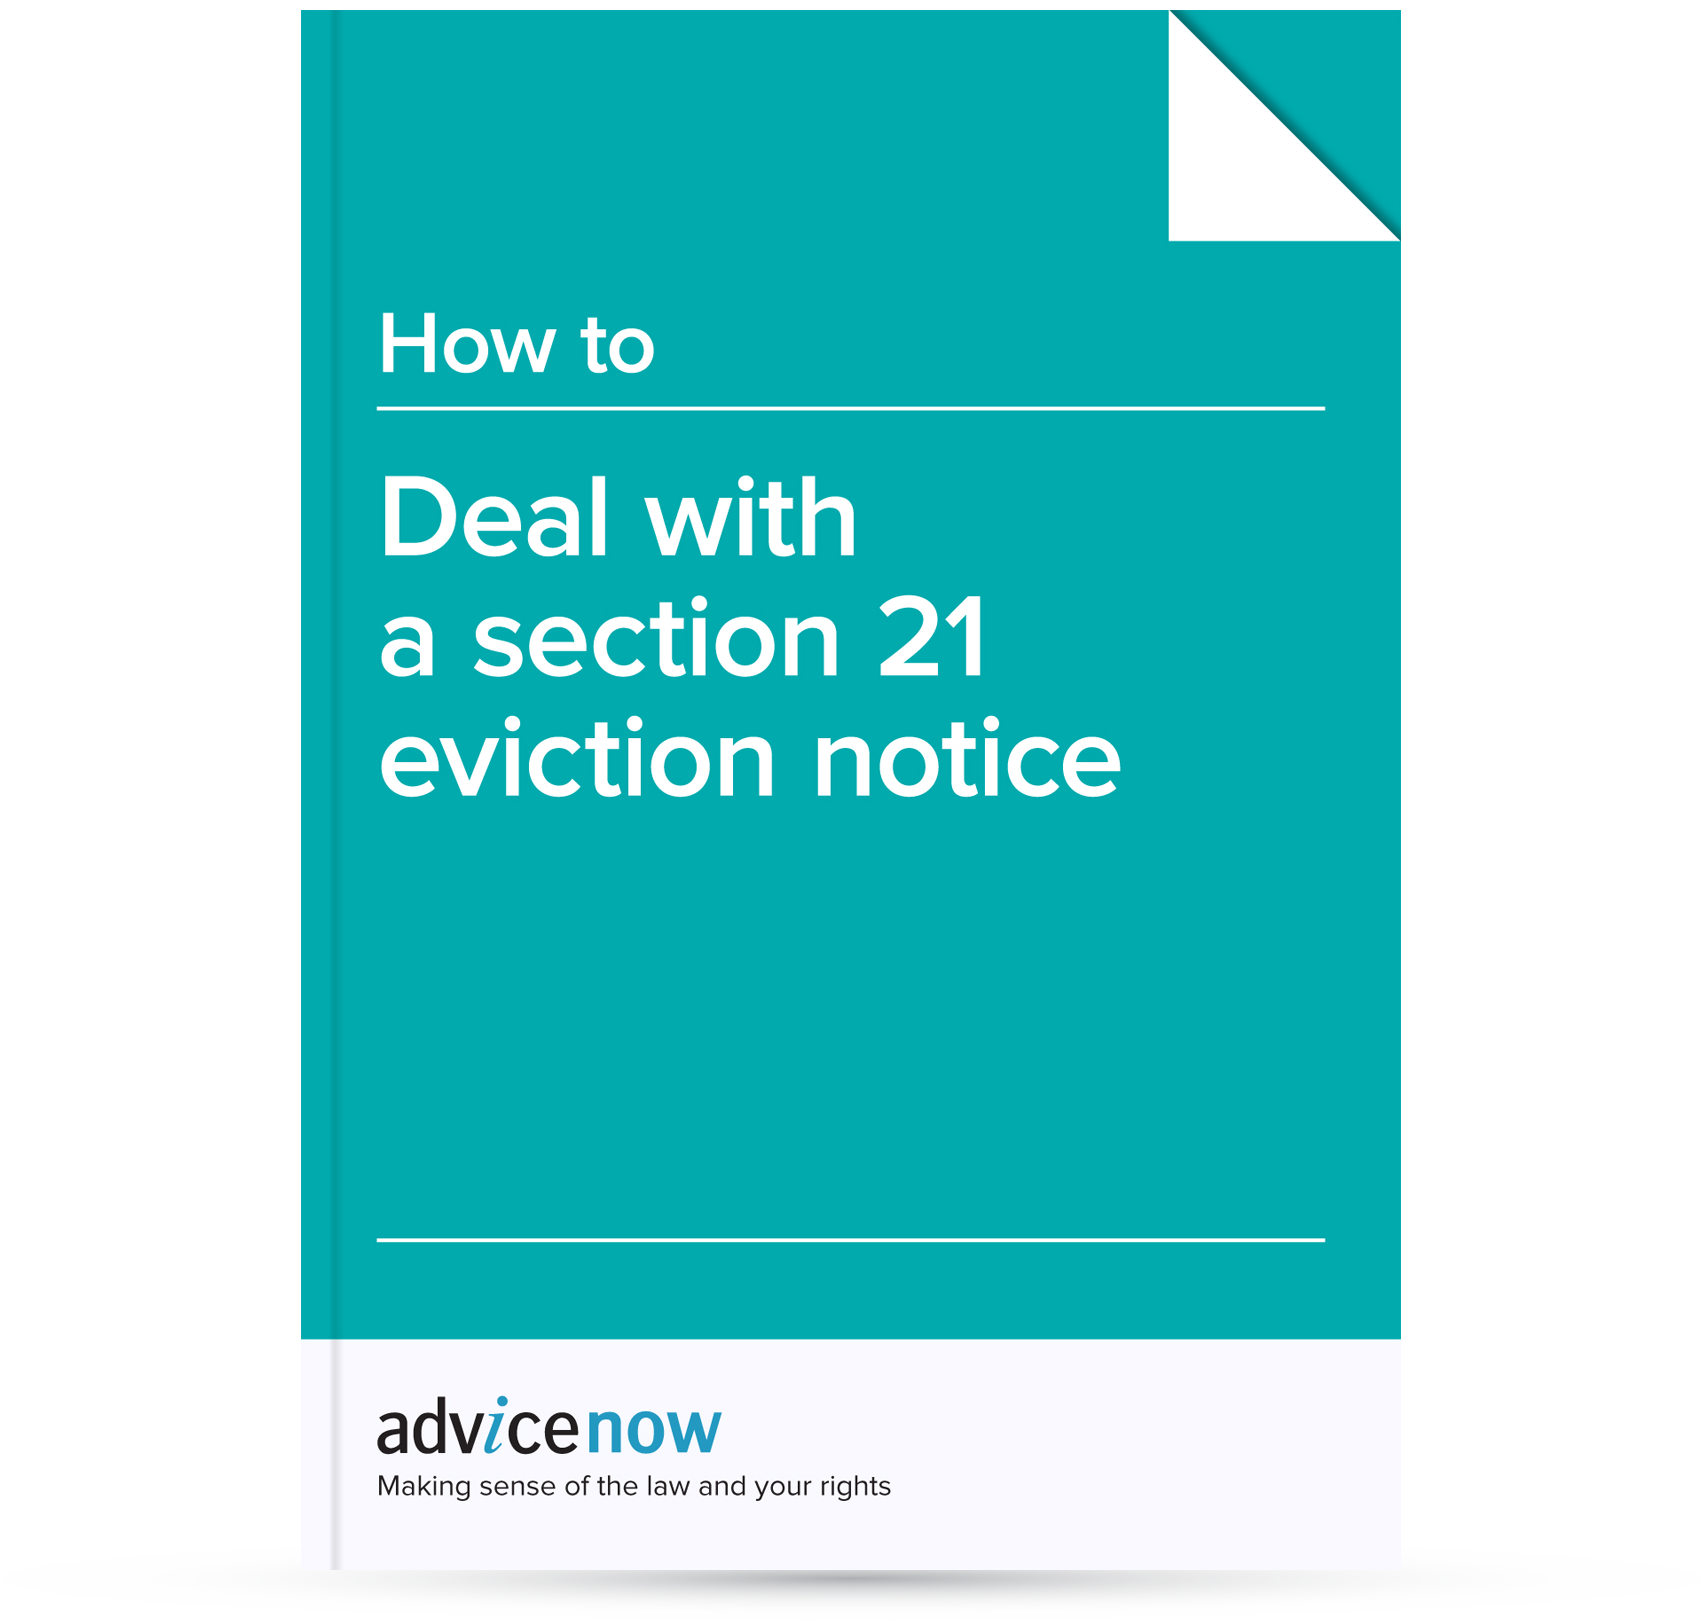 How to deal with a section 21 eviction notice | Advicenow